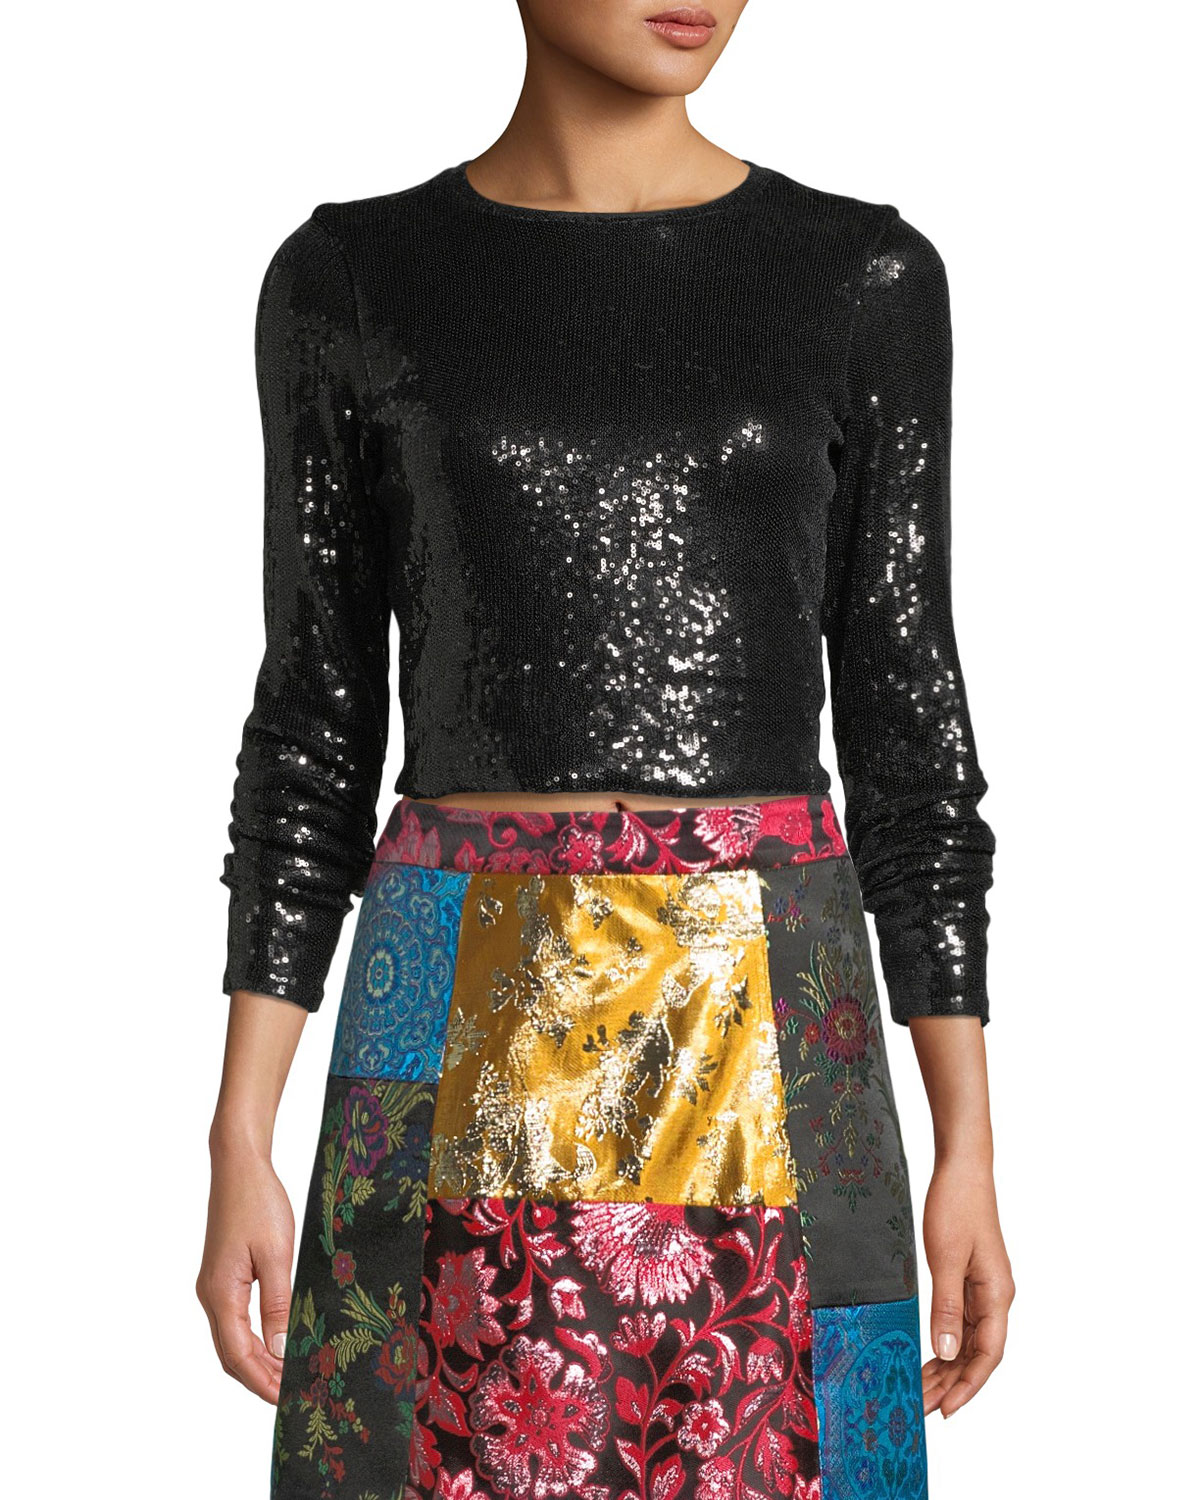 Delaina Long-Sleeve Sequined Top